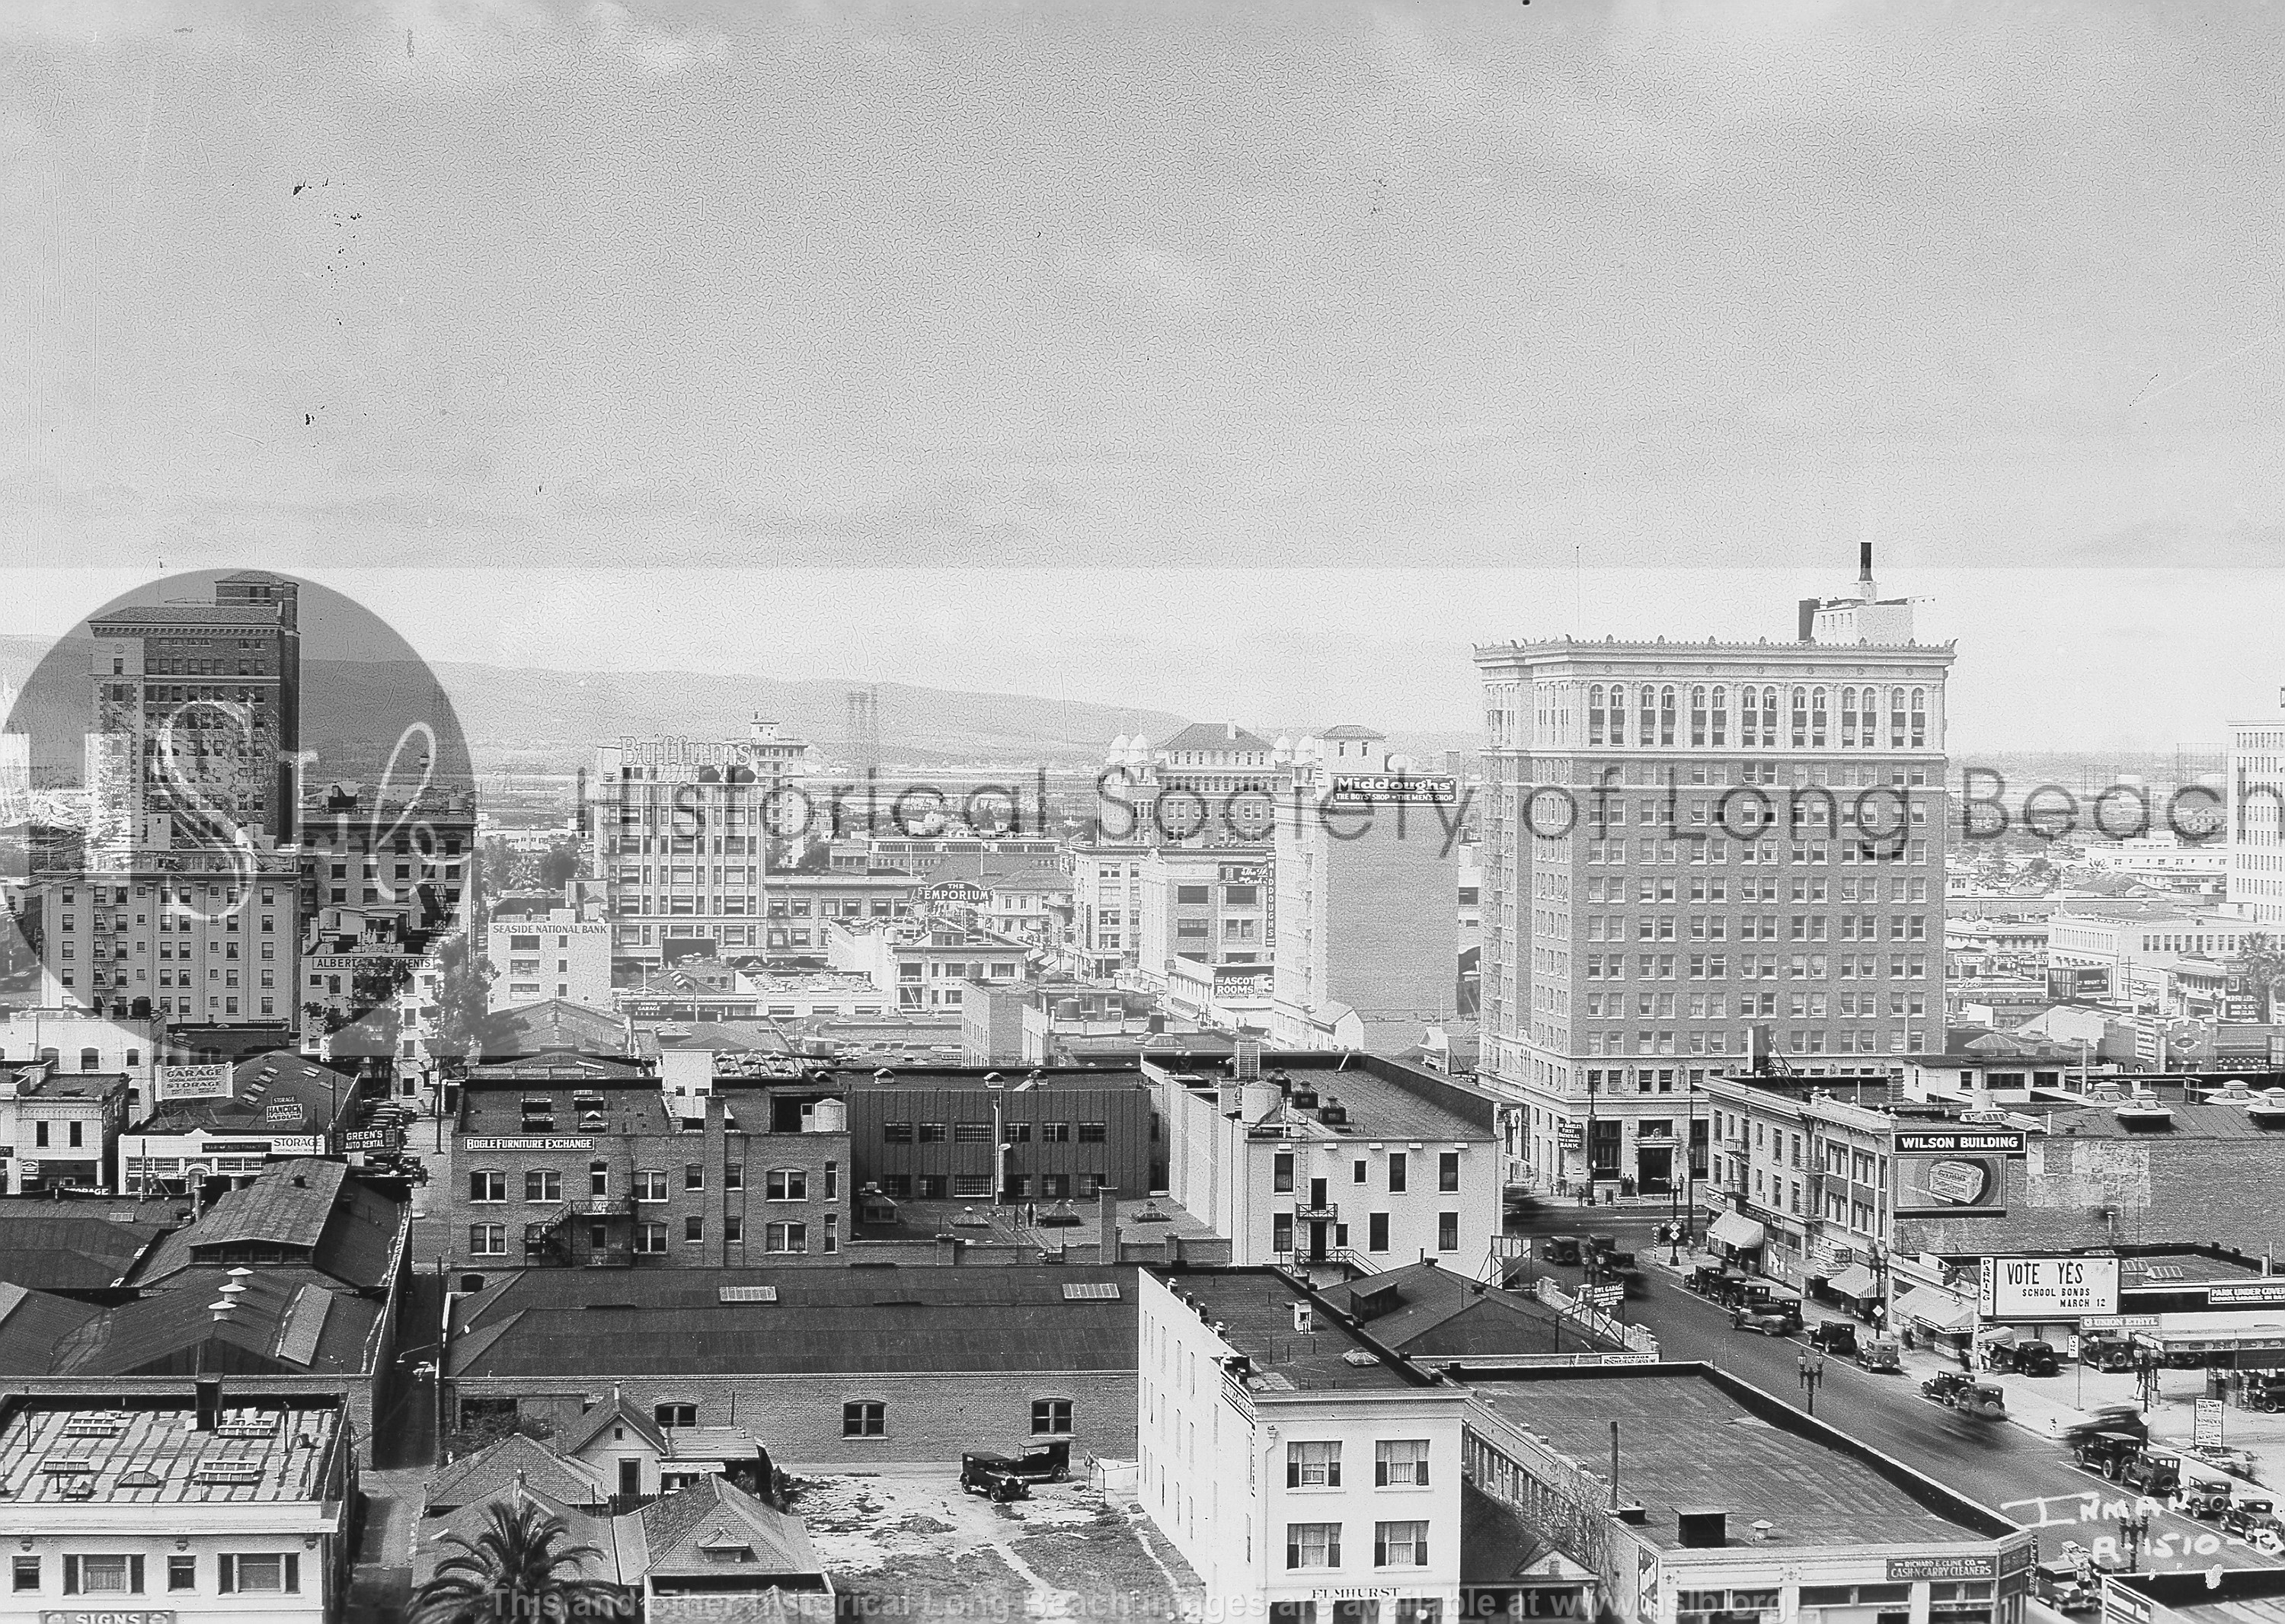 Broadway Ave, 1927 vintage photograph